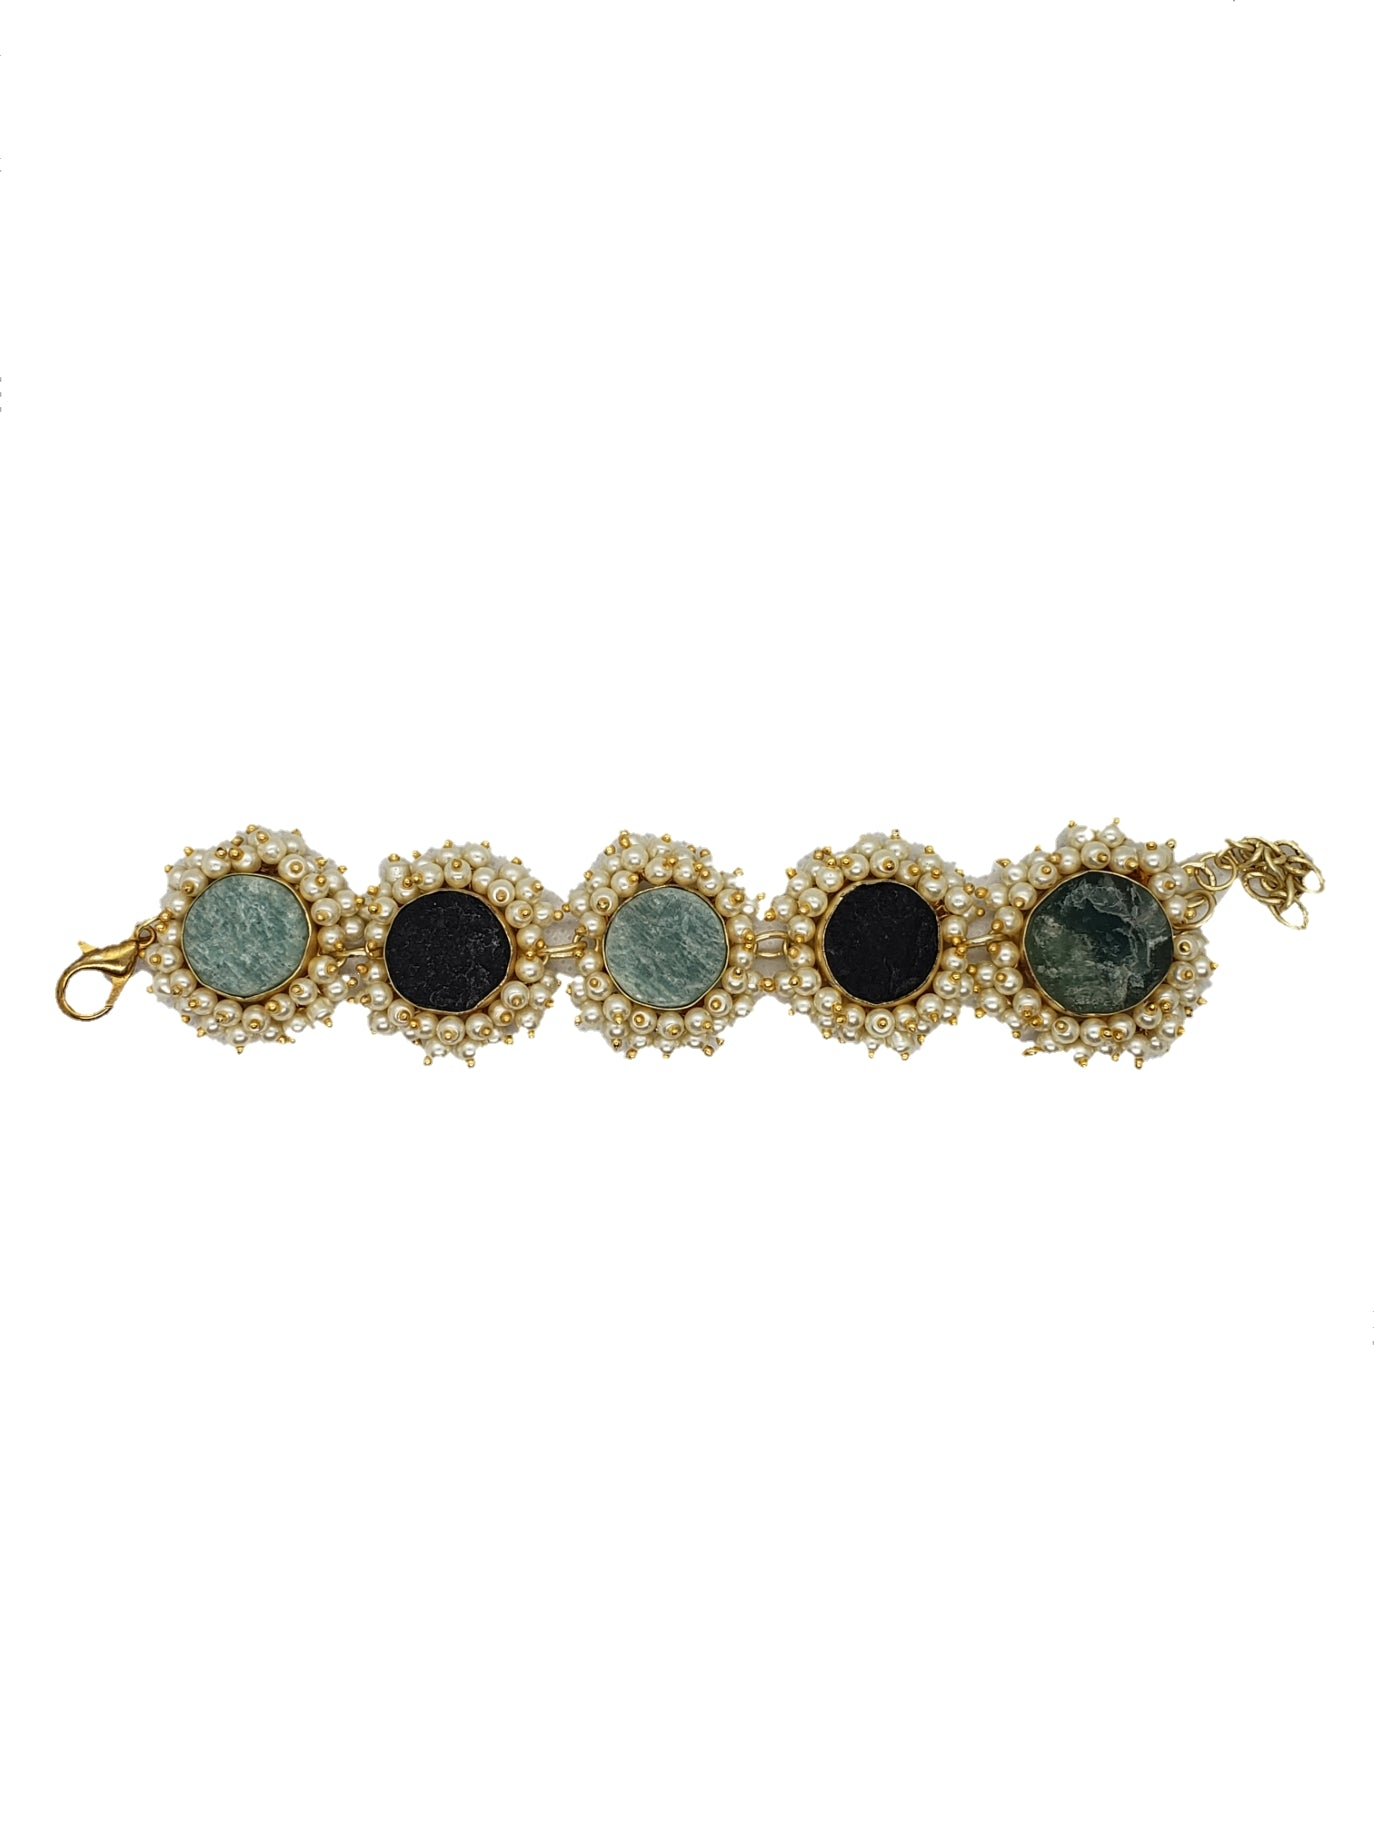 Amazonite and Obsidian Stone Bracelet - The Bauble Shop